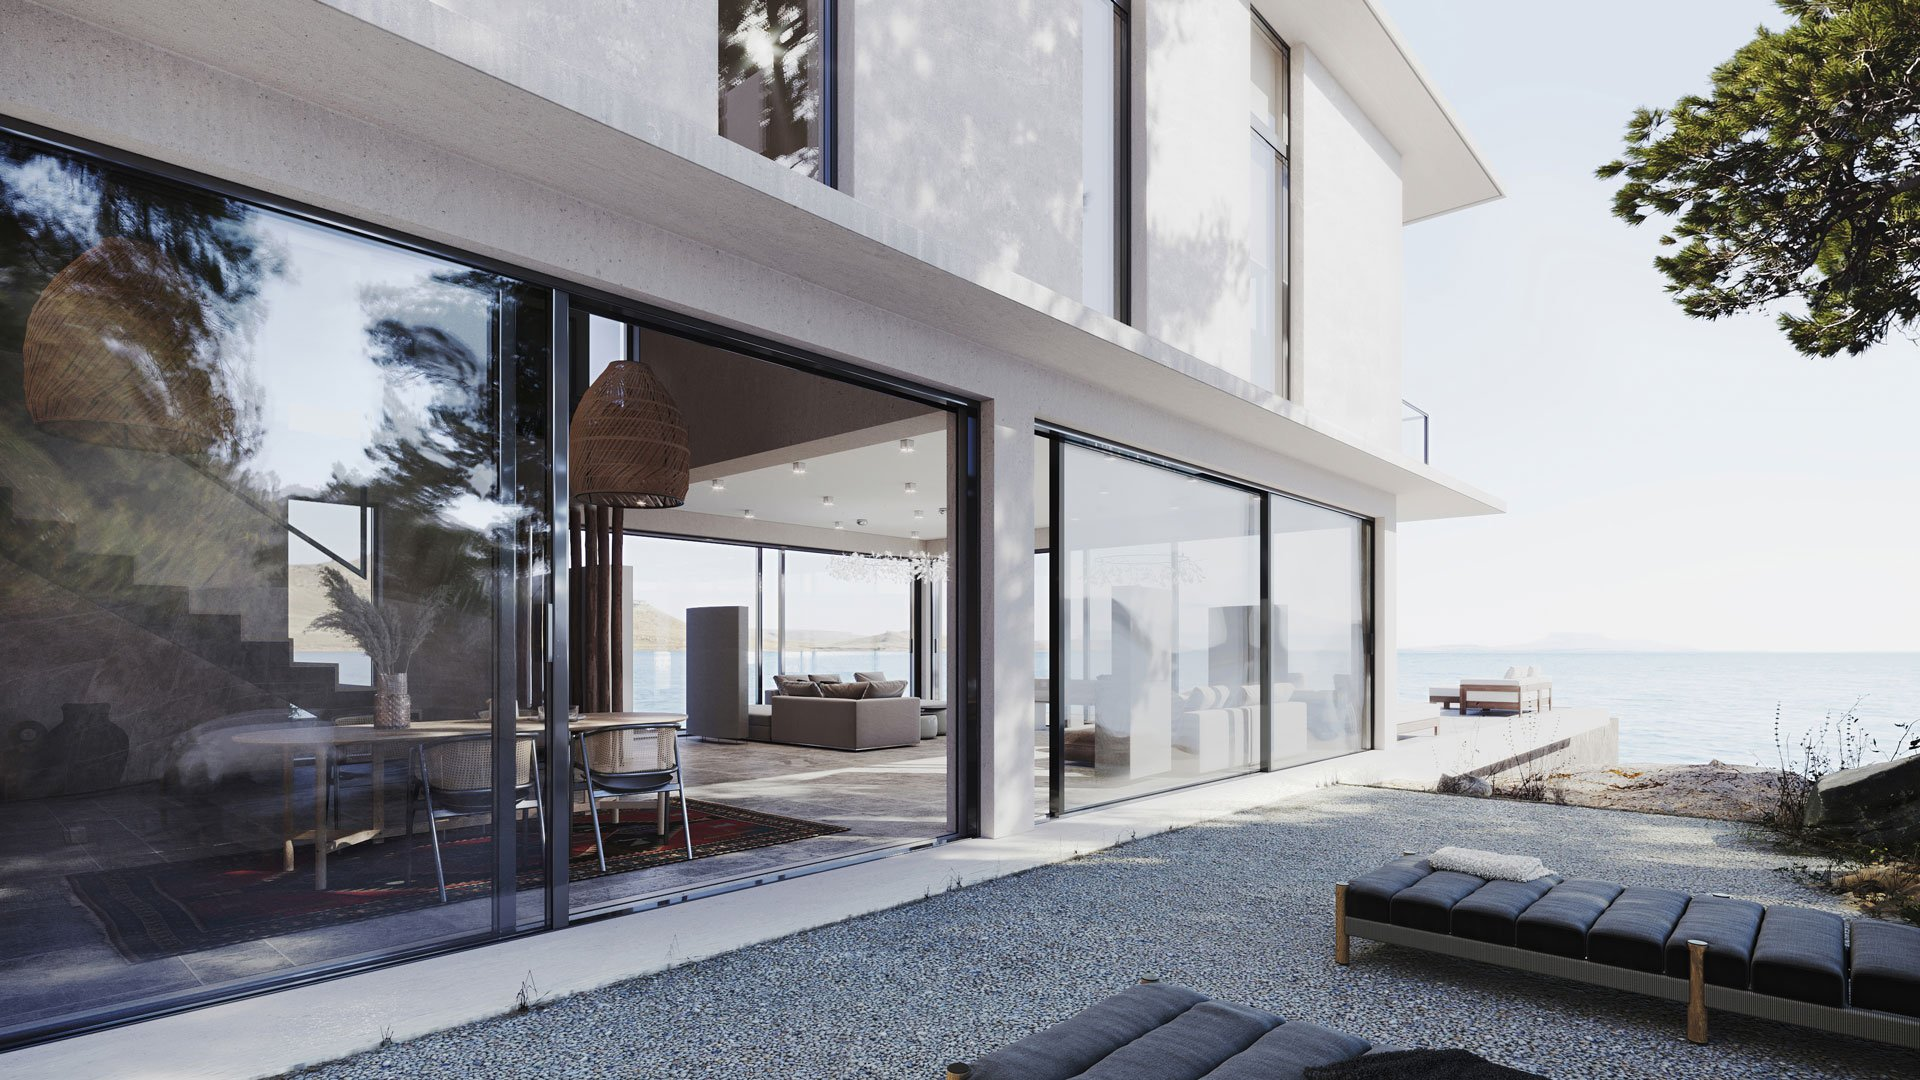 3D Exterior Rendering of a Luxury Property by the Lake